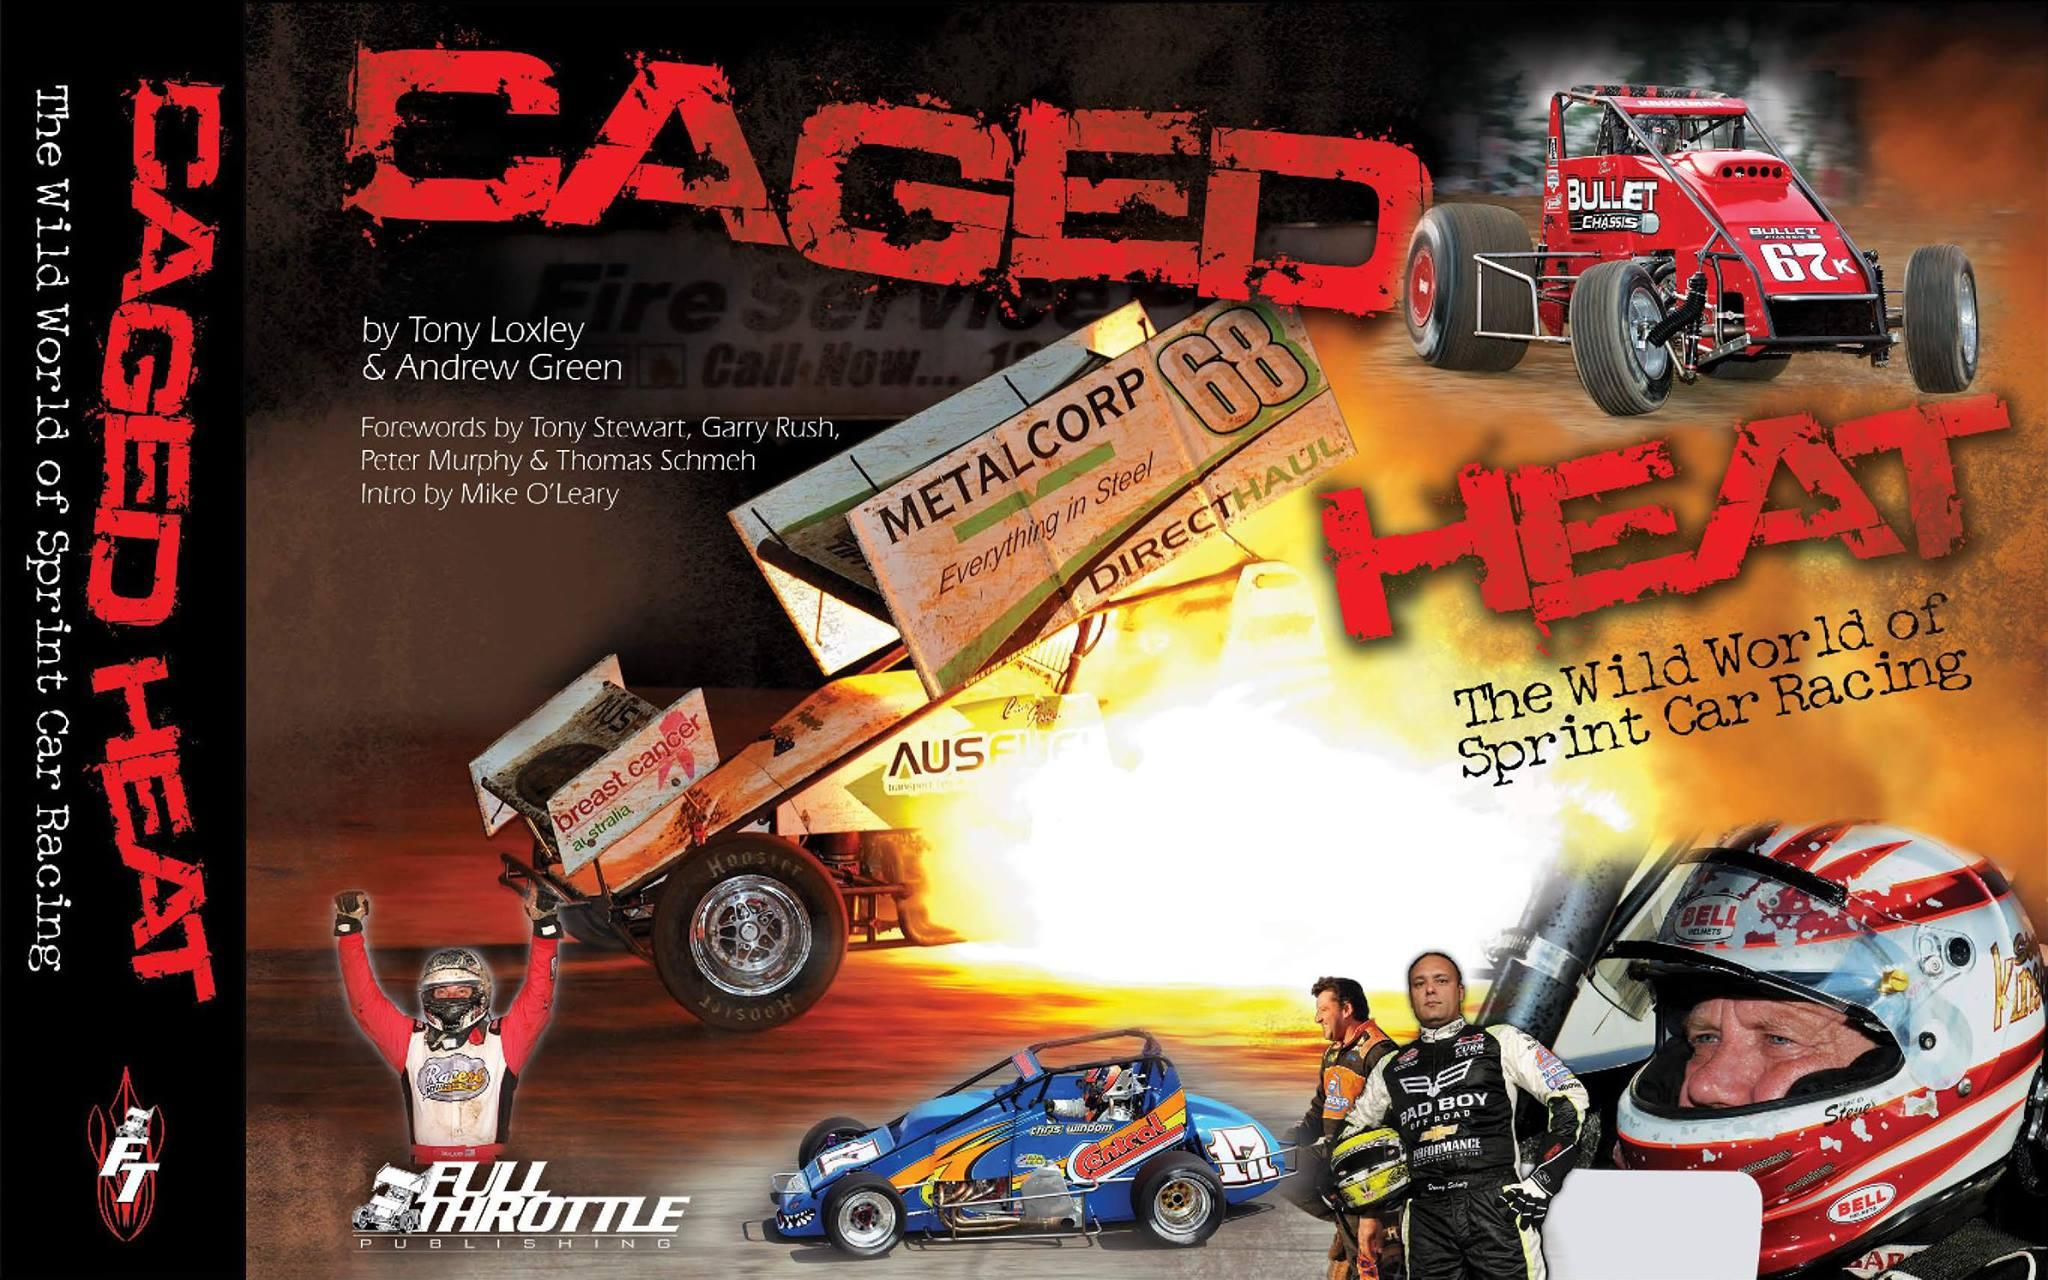 Caged Heat The Wild World of Sprint Car Racing